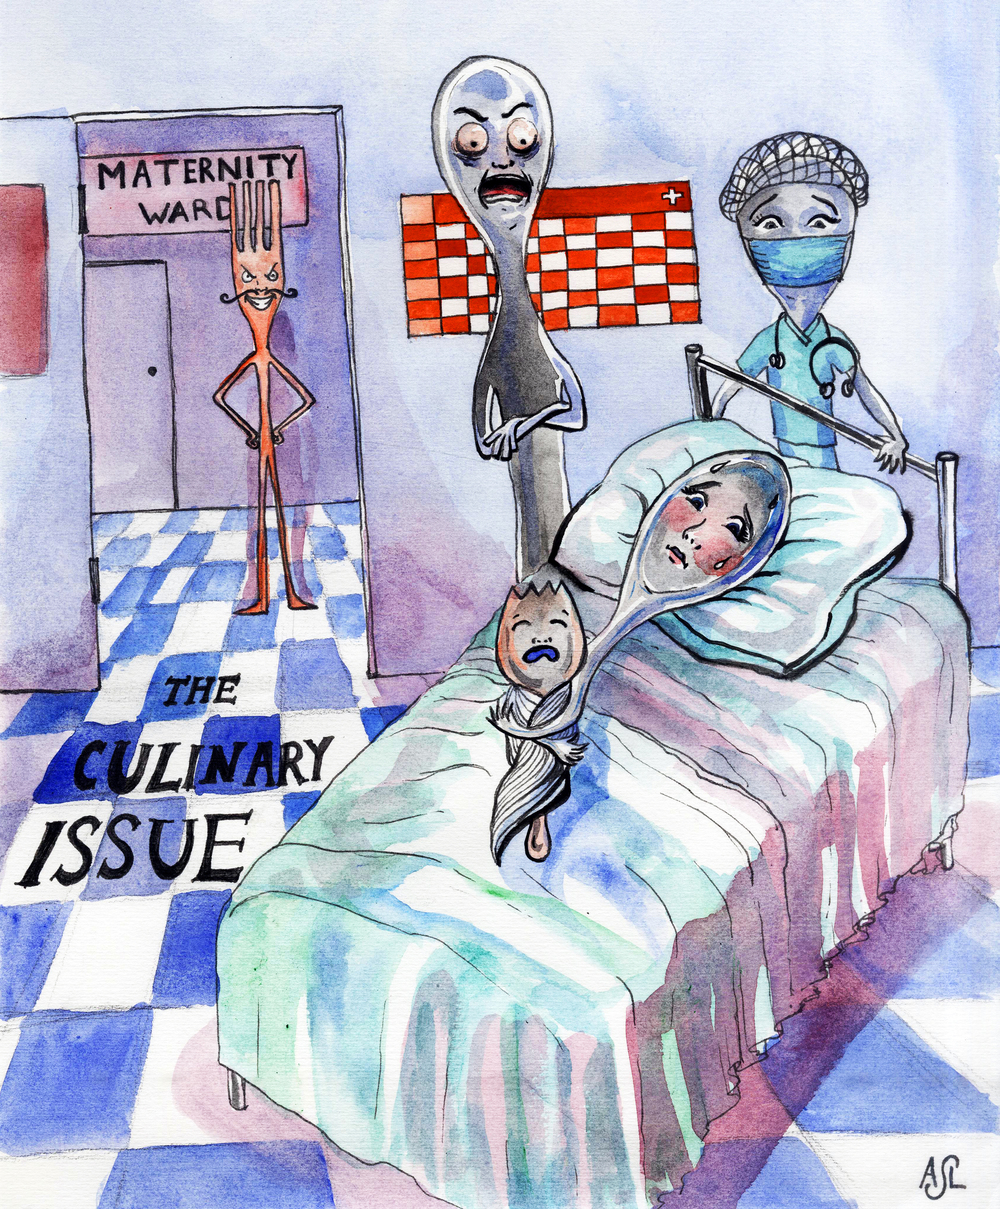 Cover for the Yale Record culinary issue